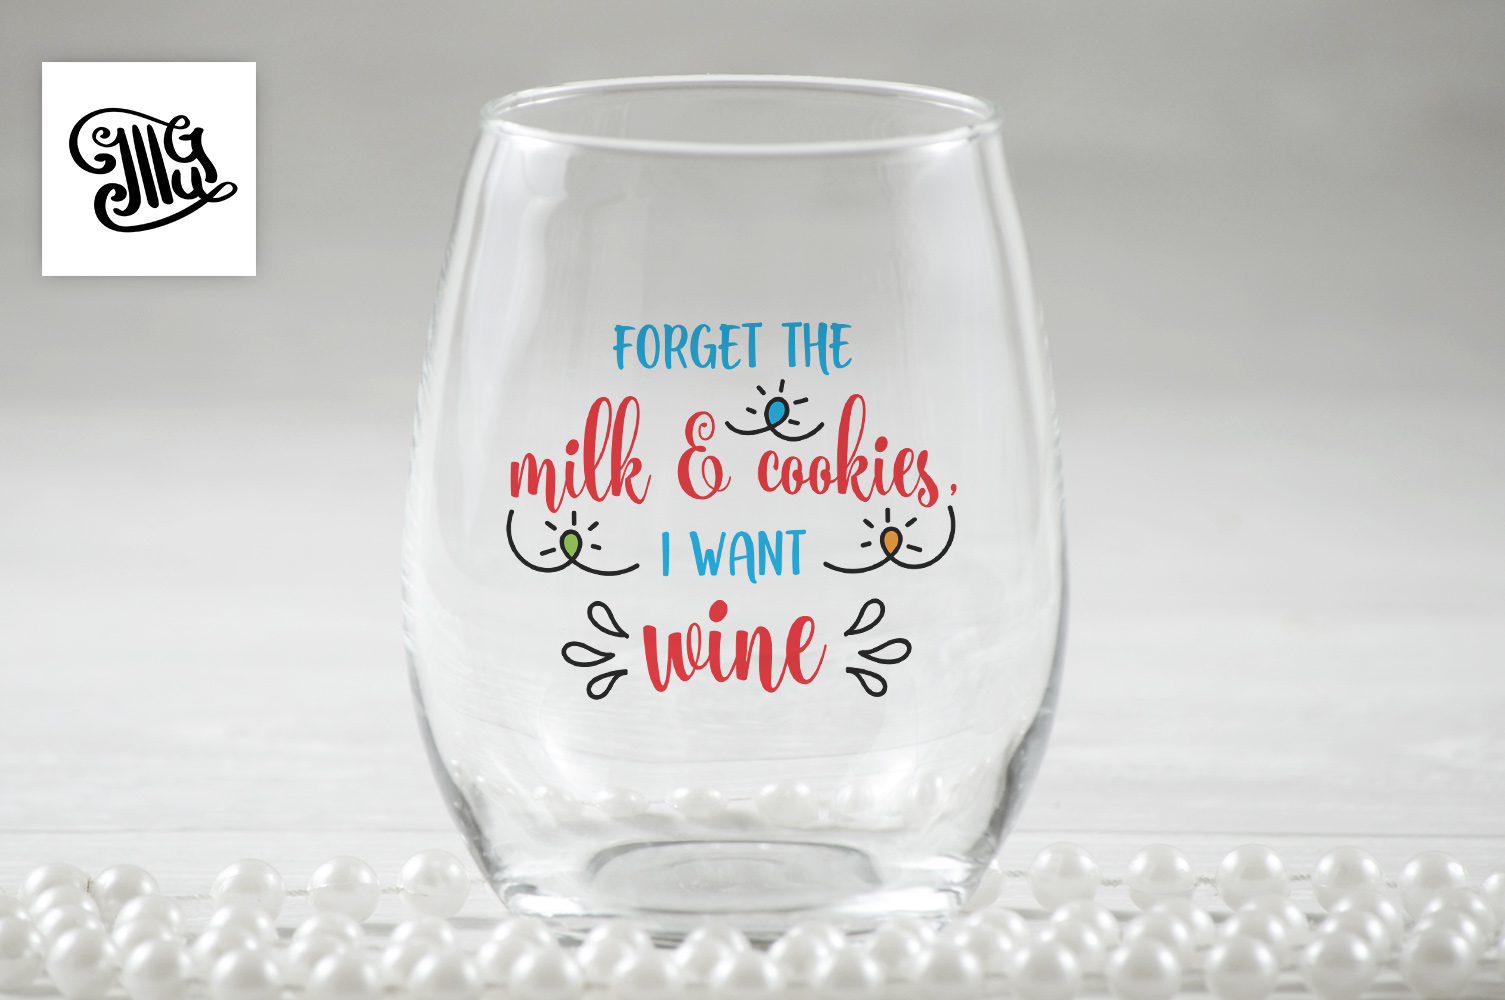 Forget the milk and cookies, I want wine - Christmas wine example image 1